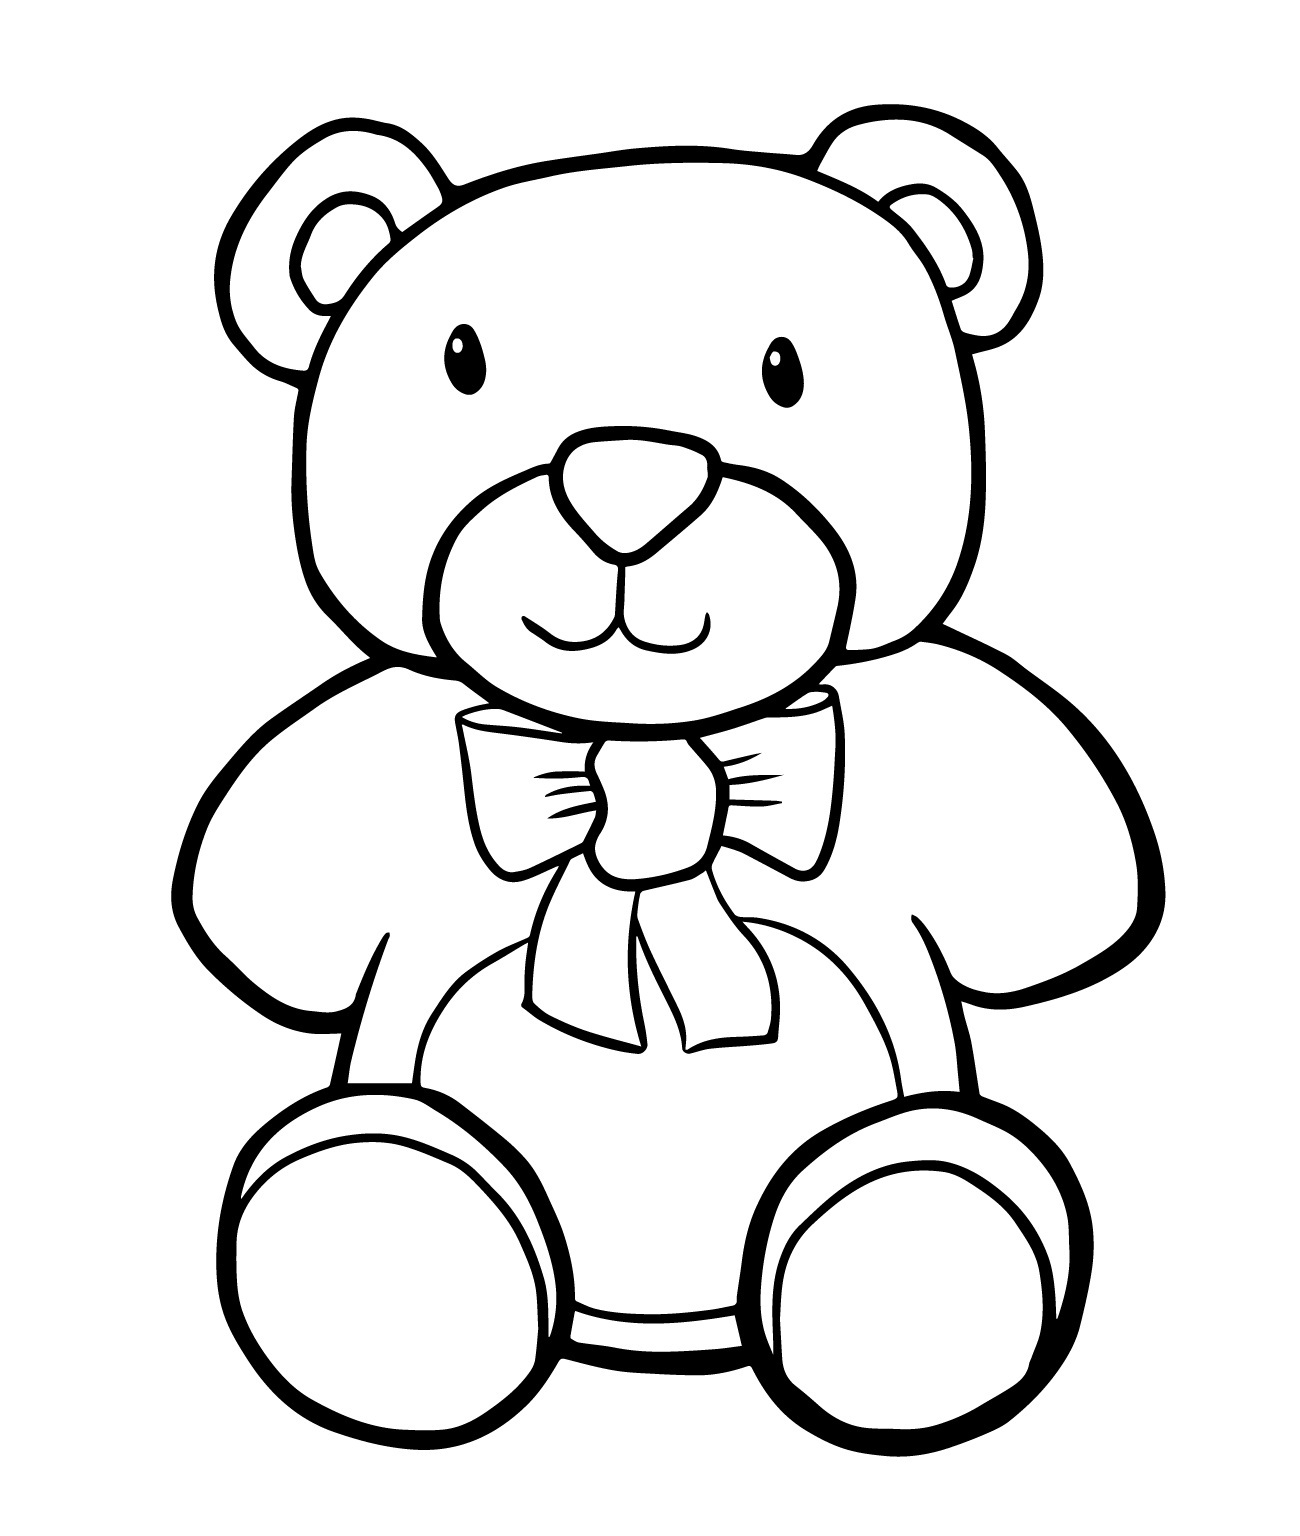 free printable teddy bear coloring pages for kids - Colour In Picture